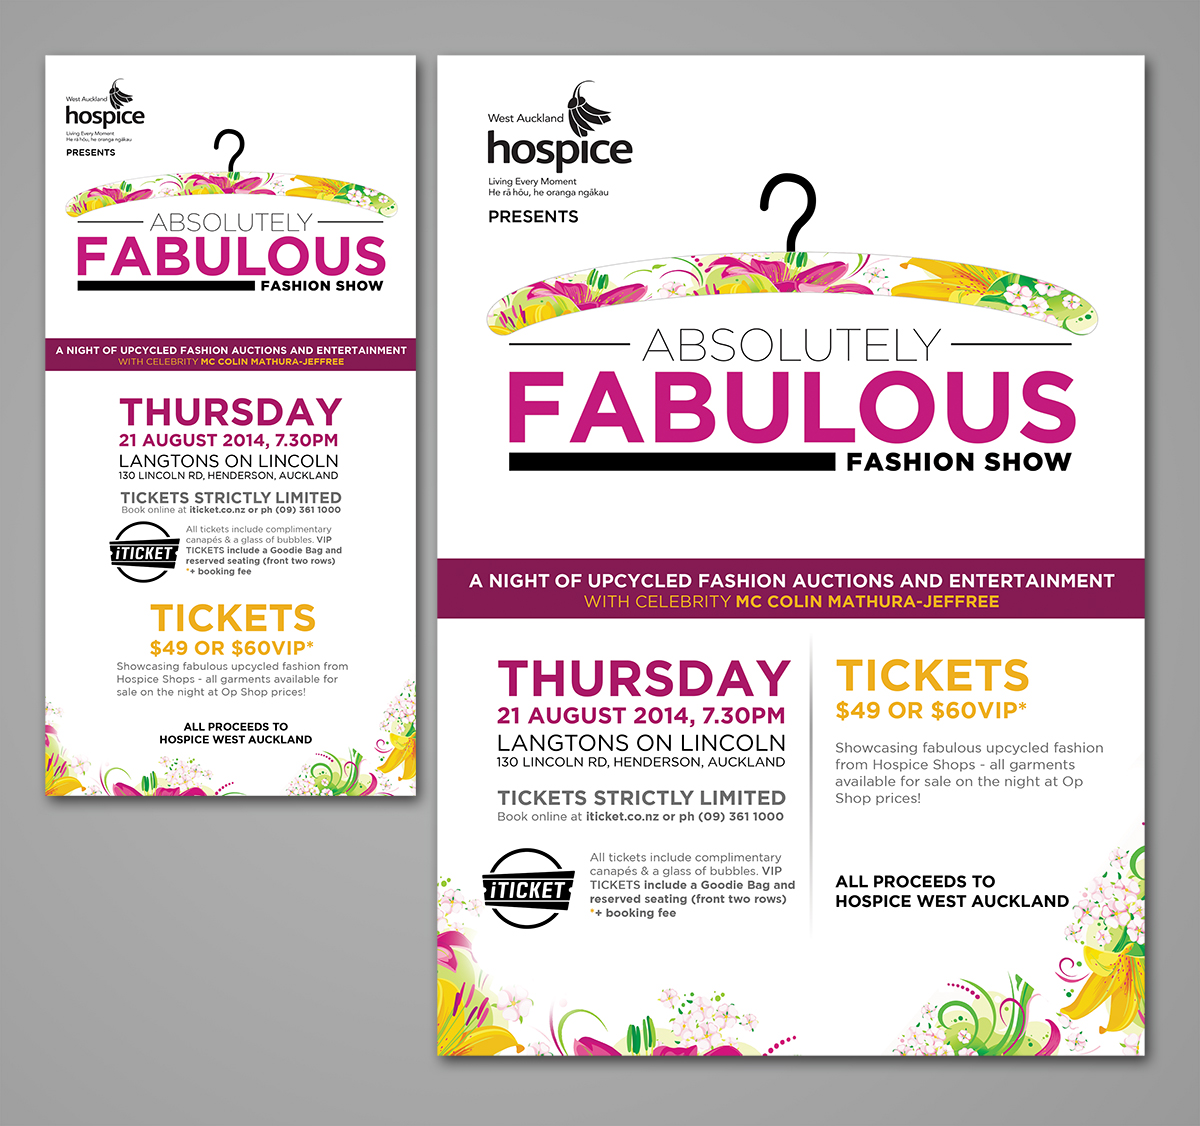 Poster design fee - Poster Design By Spreewell For Poster Flyer For Charity Fashion Show Design 3990432